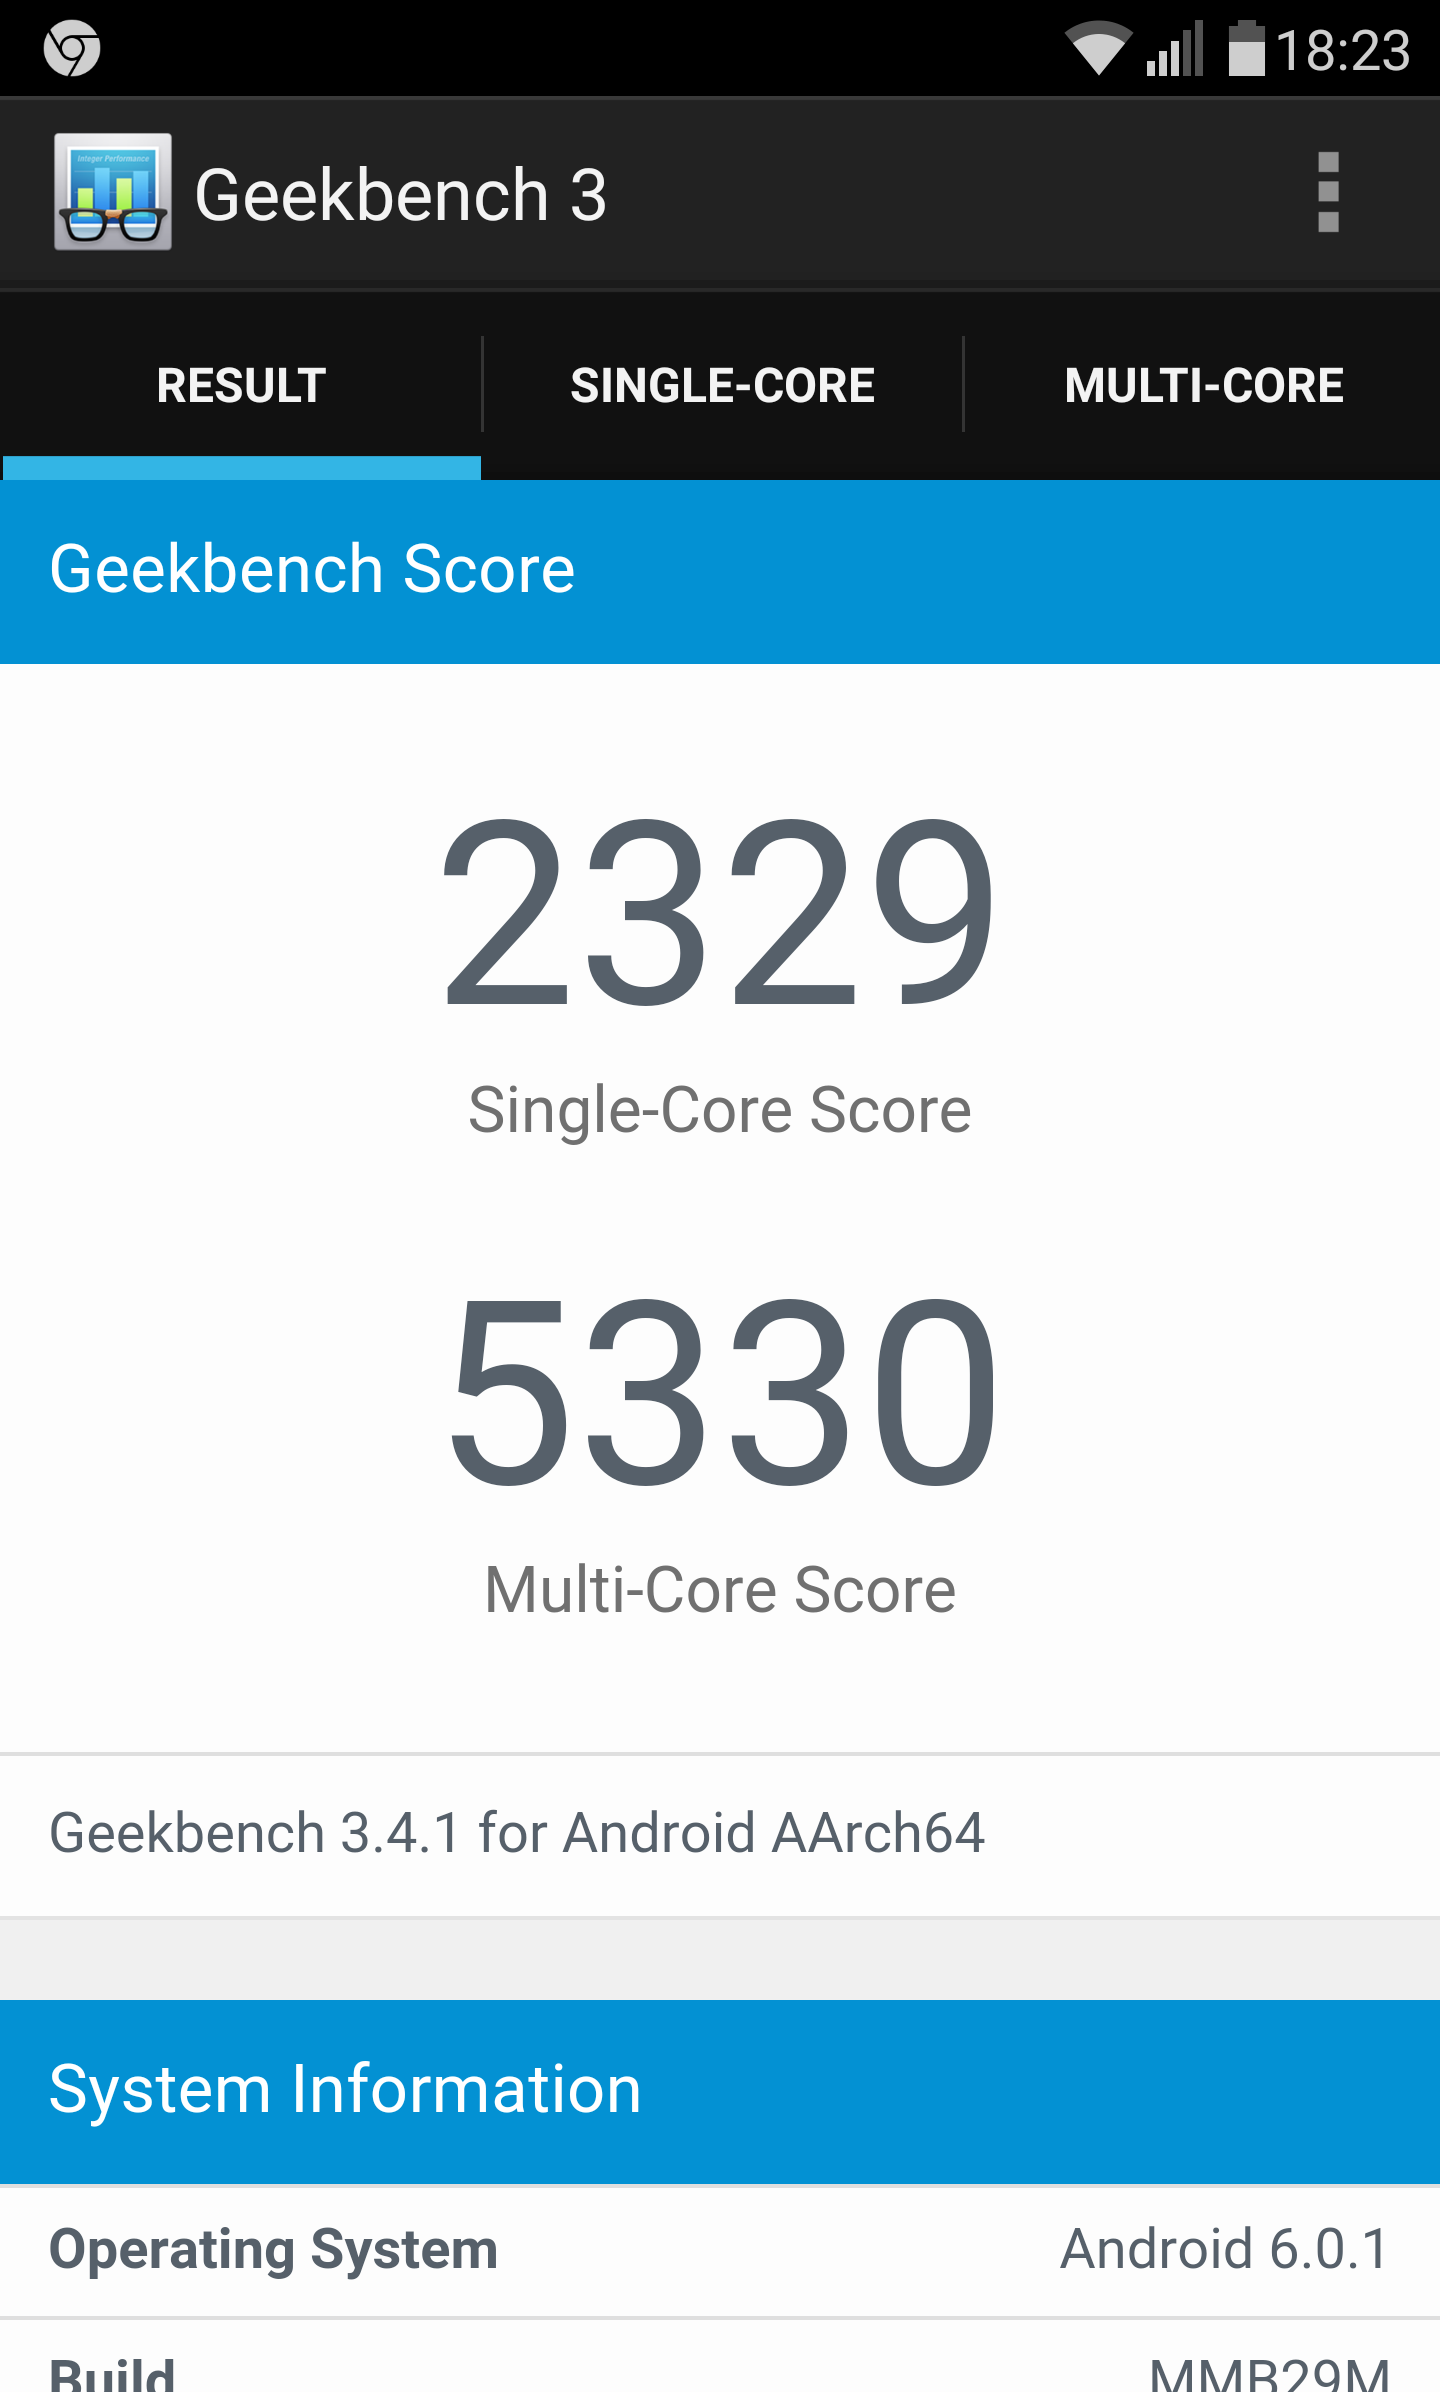 LG G5 geekbench performante